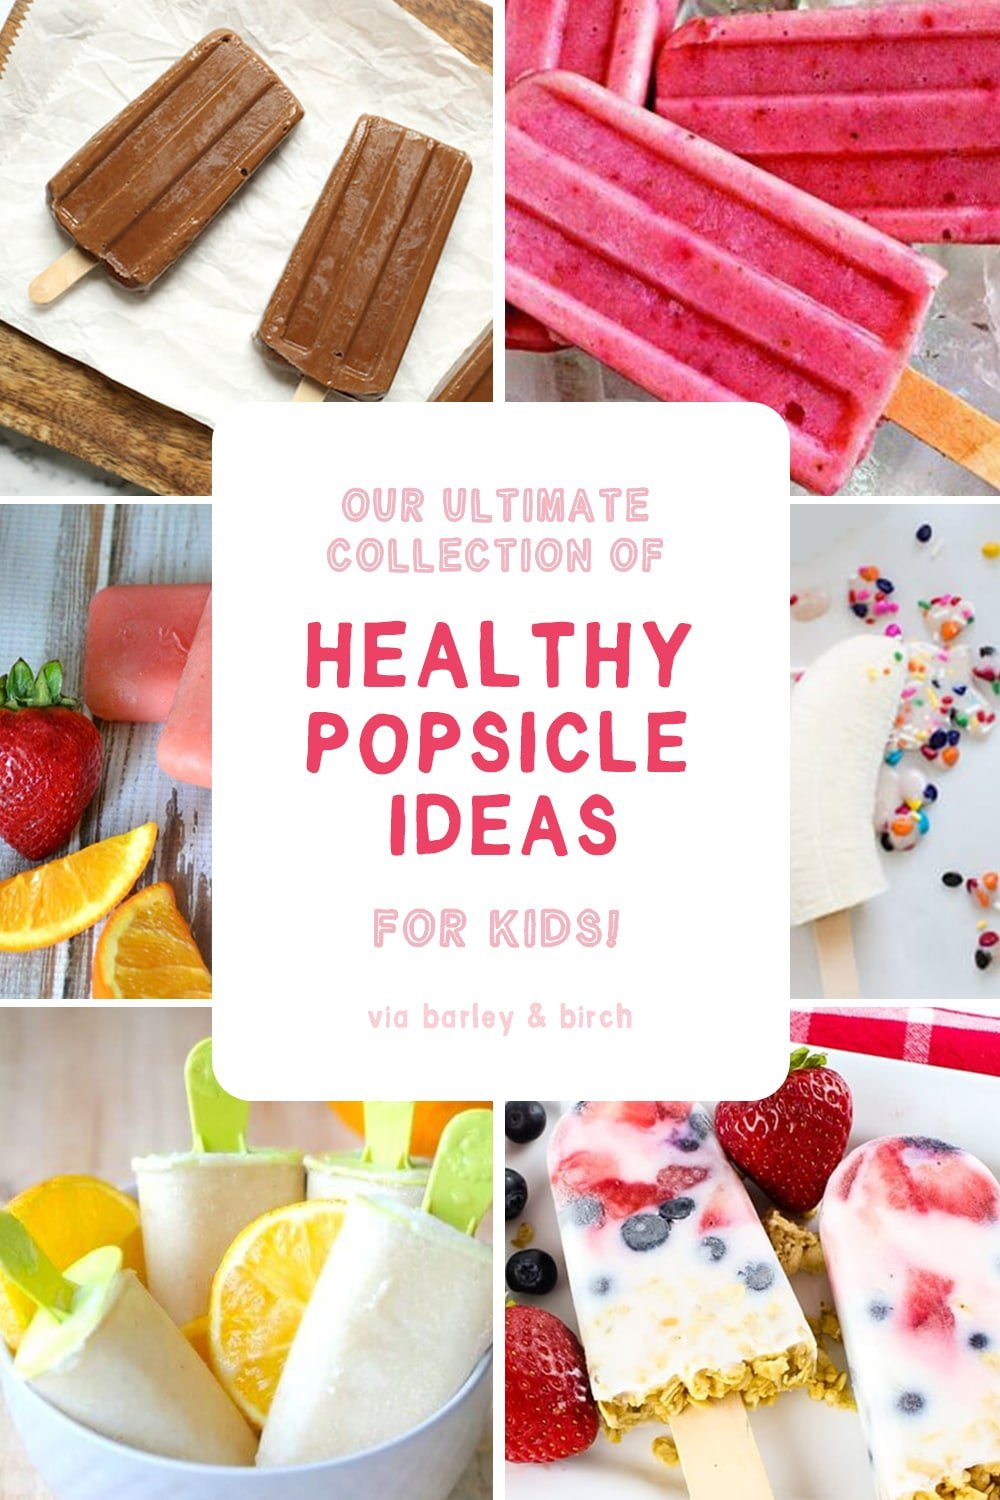 Find a new and refreshing summer favorite with this collection of unique and healthy popsicle ideas and recipes for kids (and adults!) | via barley & birch